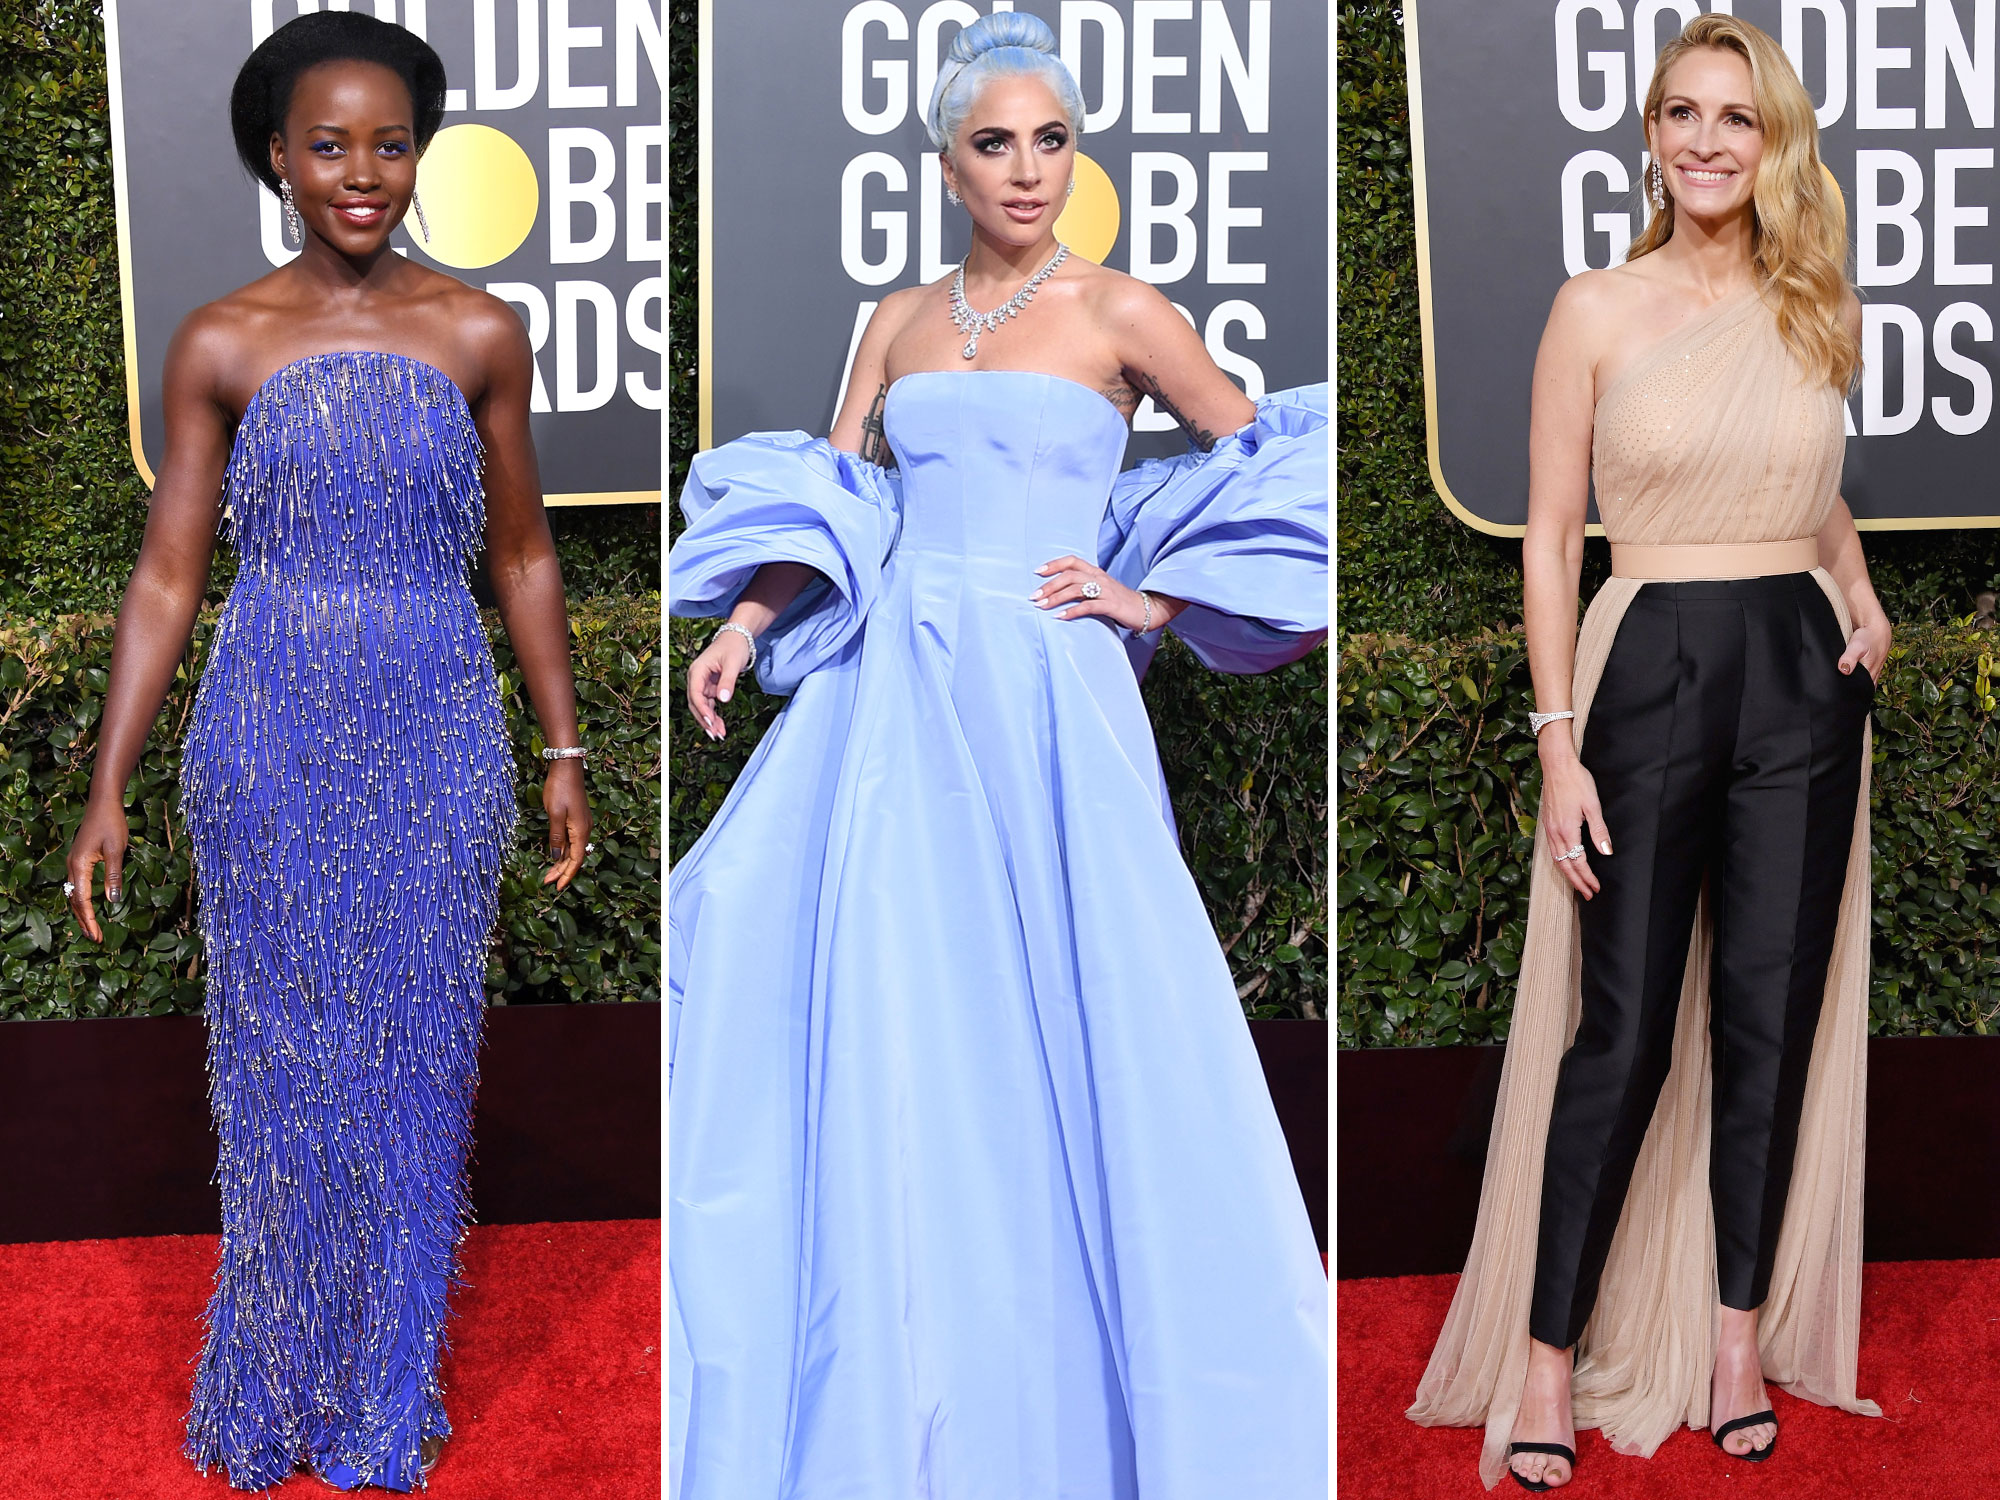 The Best-Dressed Women at the 2019 Golden Globes